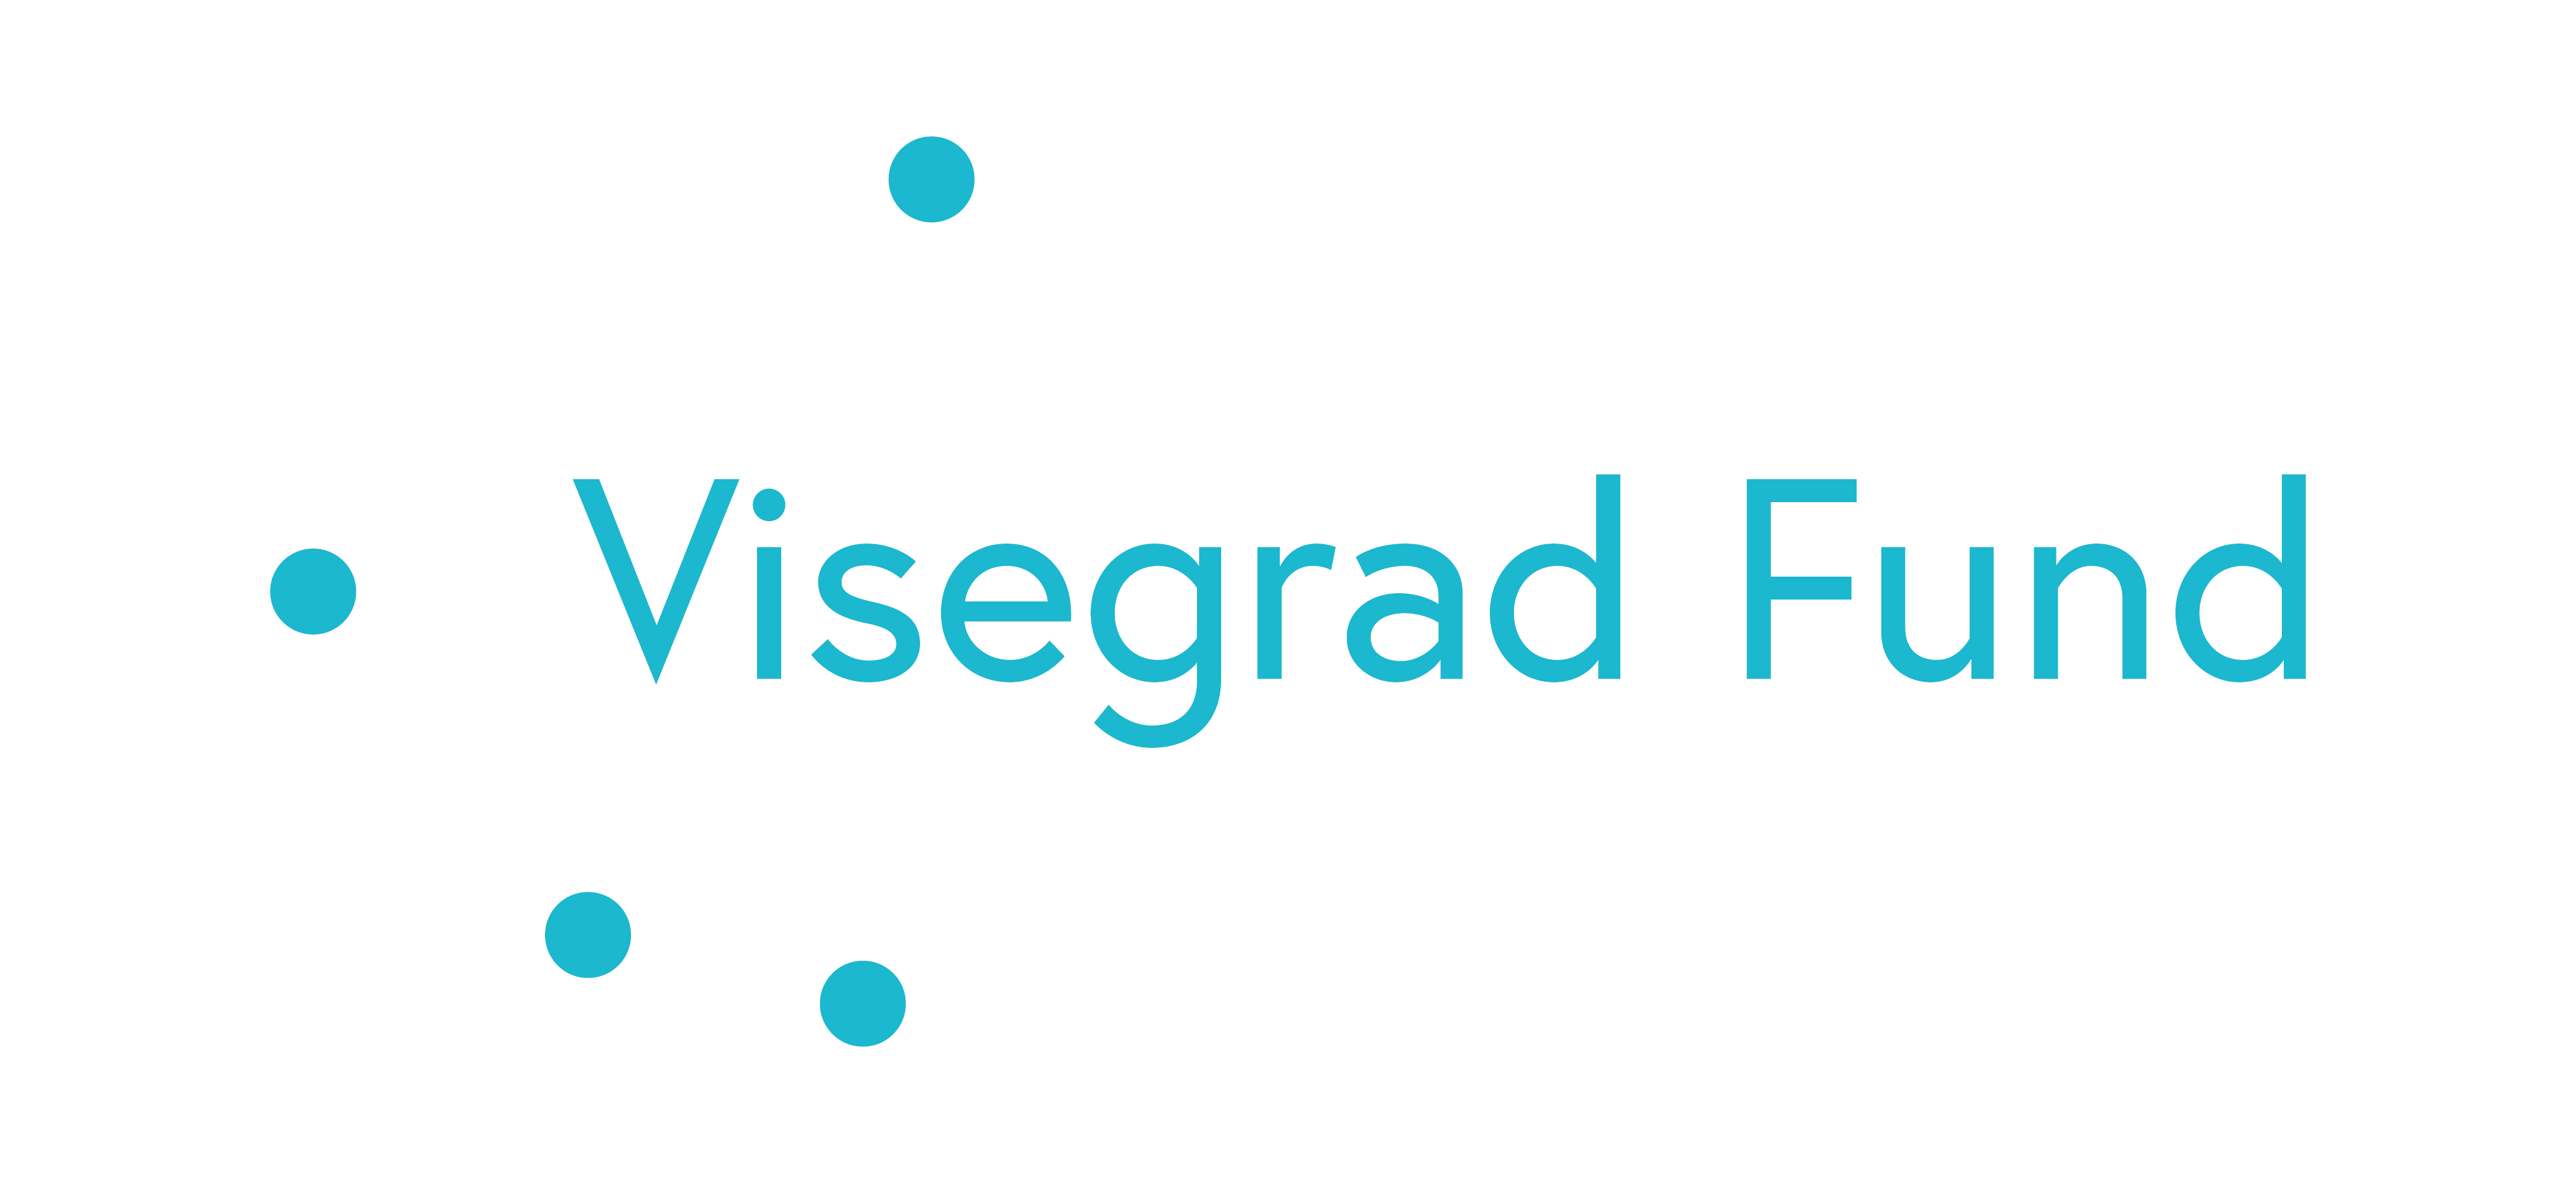 visegrad_fund_logo_blue (002)